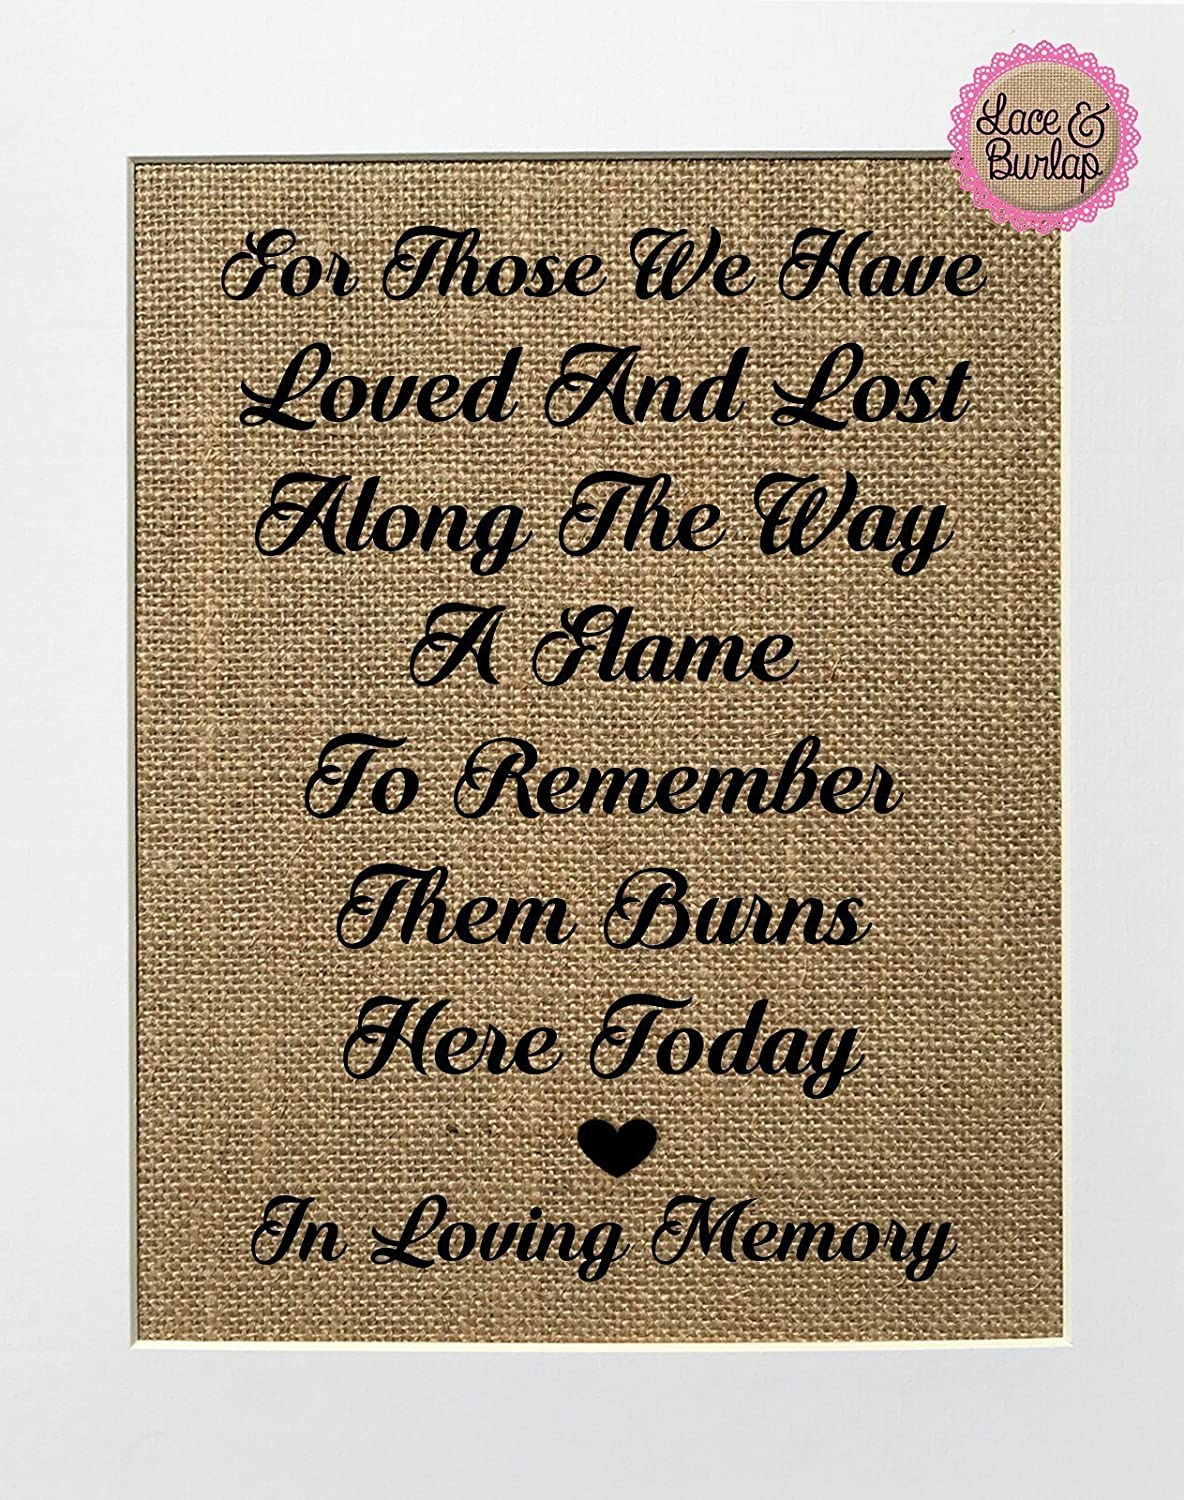 Burlap Print Sign 8x10 UNFRAMED For Those We Have Loved and Lost Along The Way a Flame to Remember Them Burns Here Today in Loving Memory Wedding Sign Loved One Poem Rustic Vintage Wedding Sign